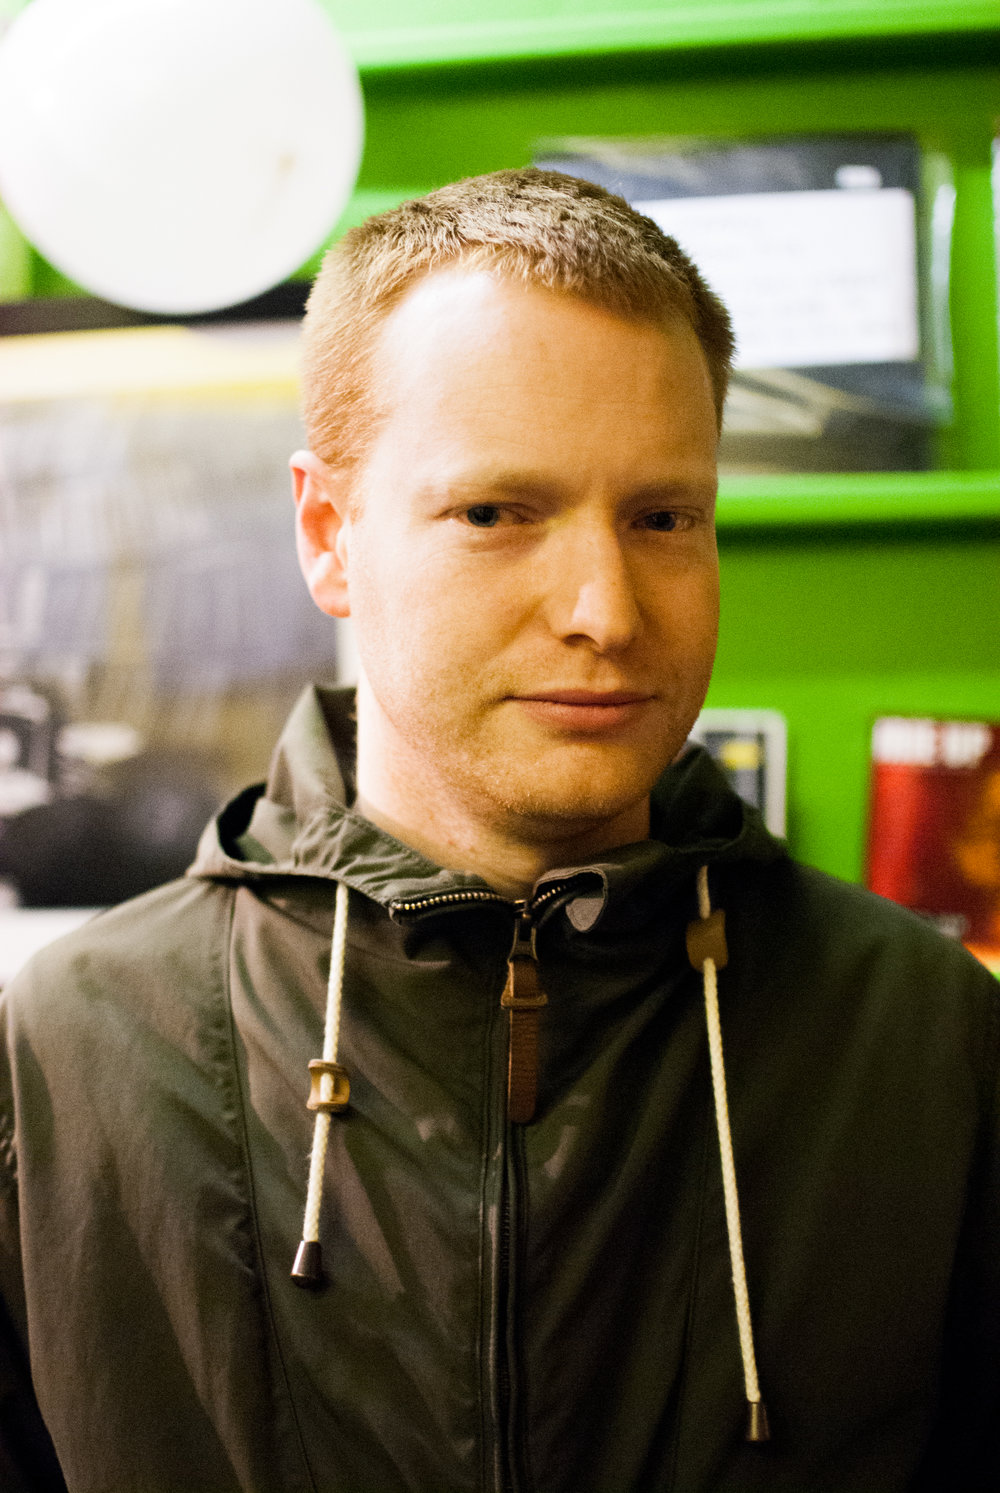 Chris Farrell, Owner of Idle Hands Record Shop